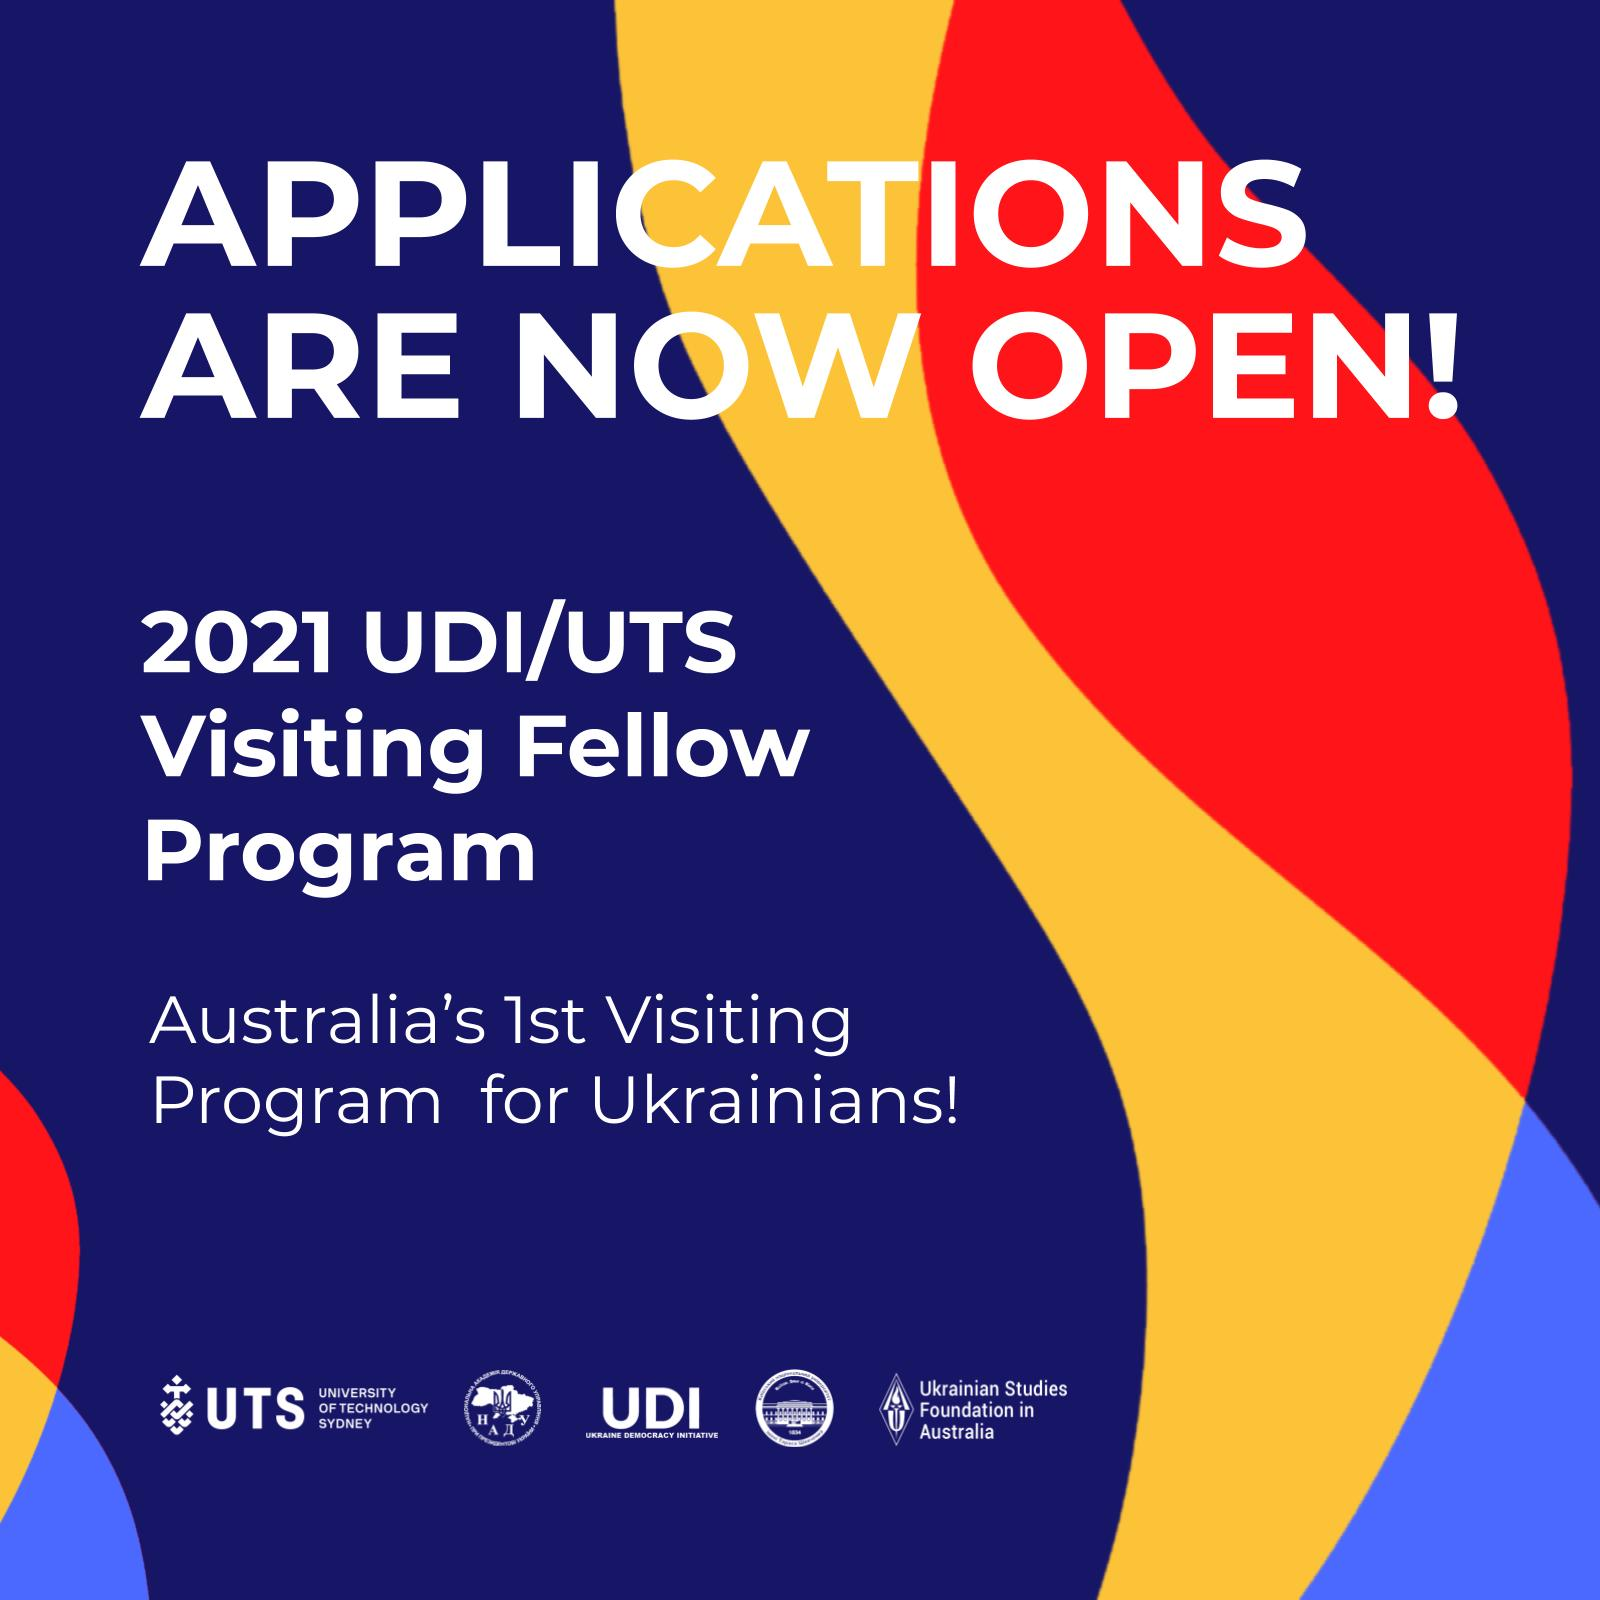 APPLICATIONS FOR 2021 UDI VISITING FELLOWSHIP ARE NOW OPEN